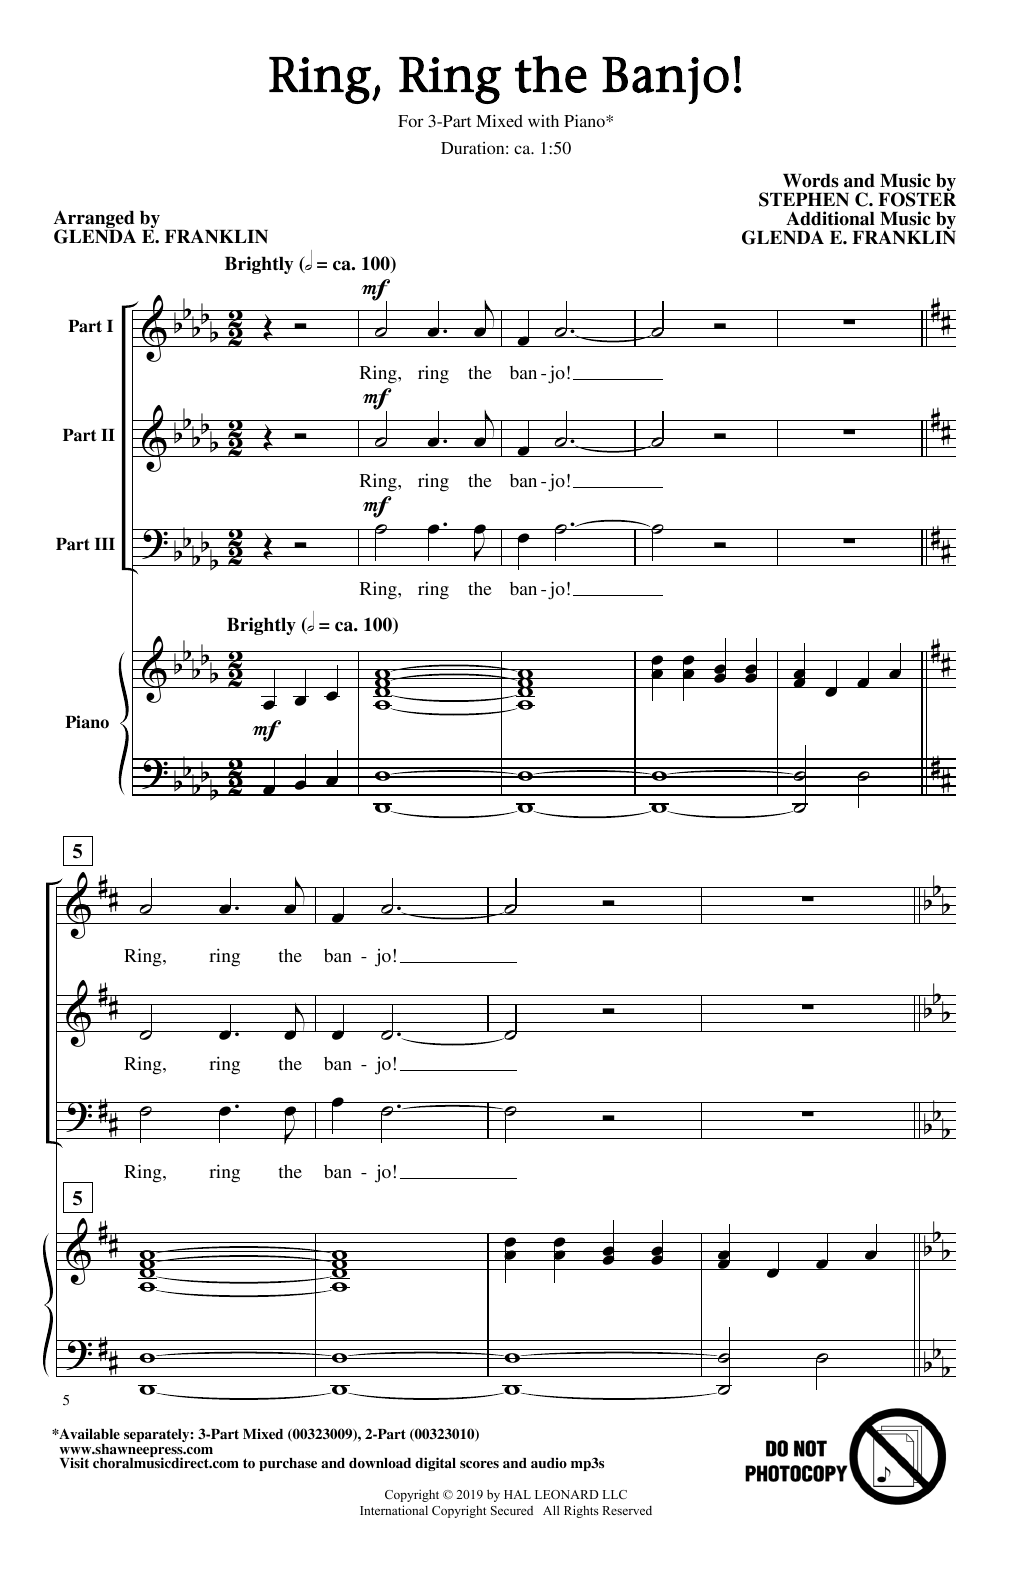 Stephen C. Foster Ring, Ring The Banjo! (arr. Glenda E. Franklin) sheet music notes and chords. Download Printable PDF.